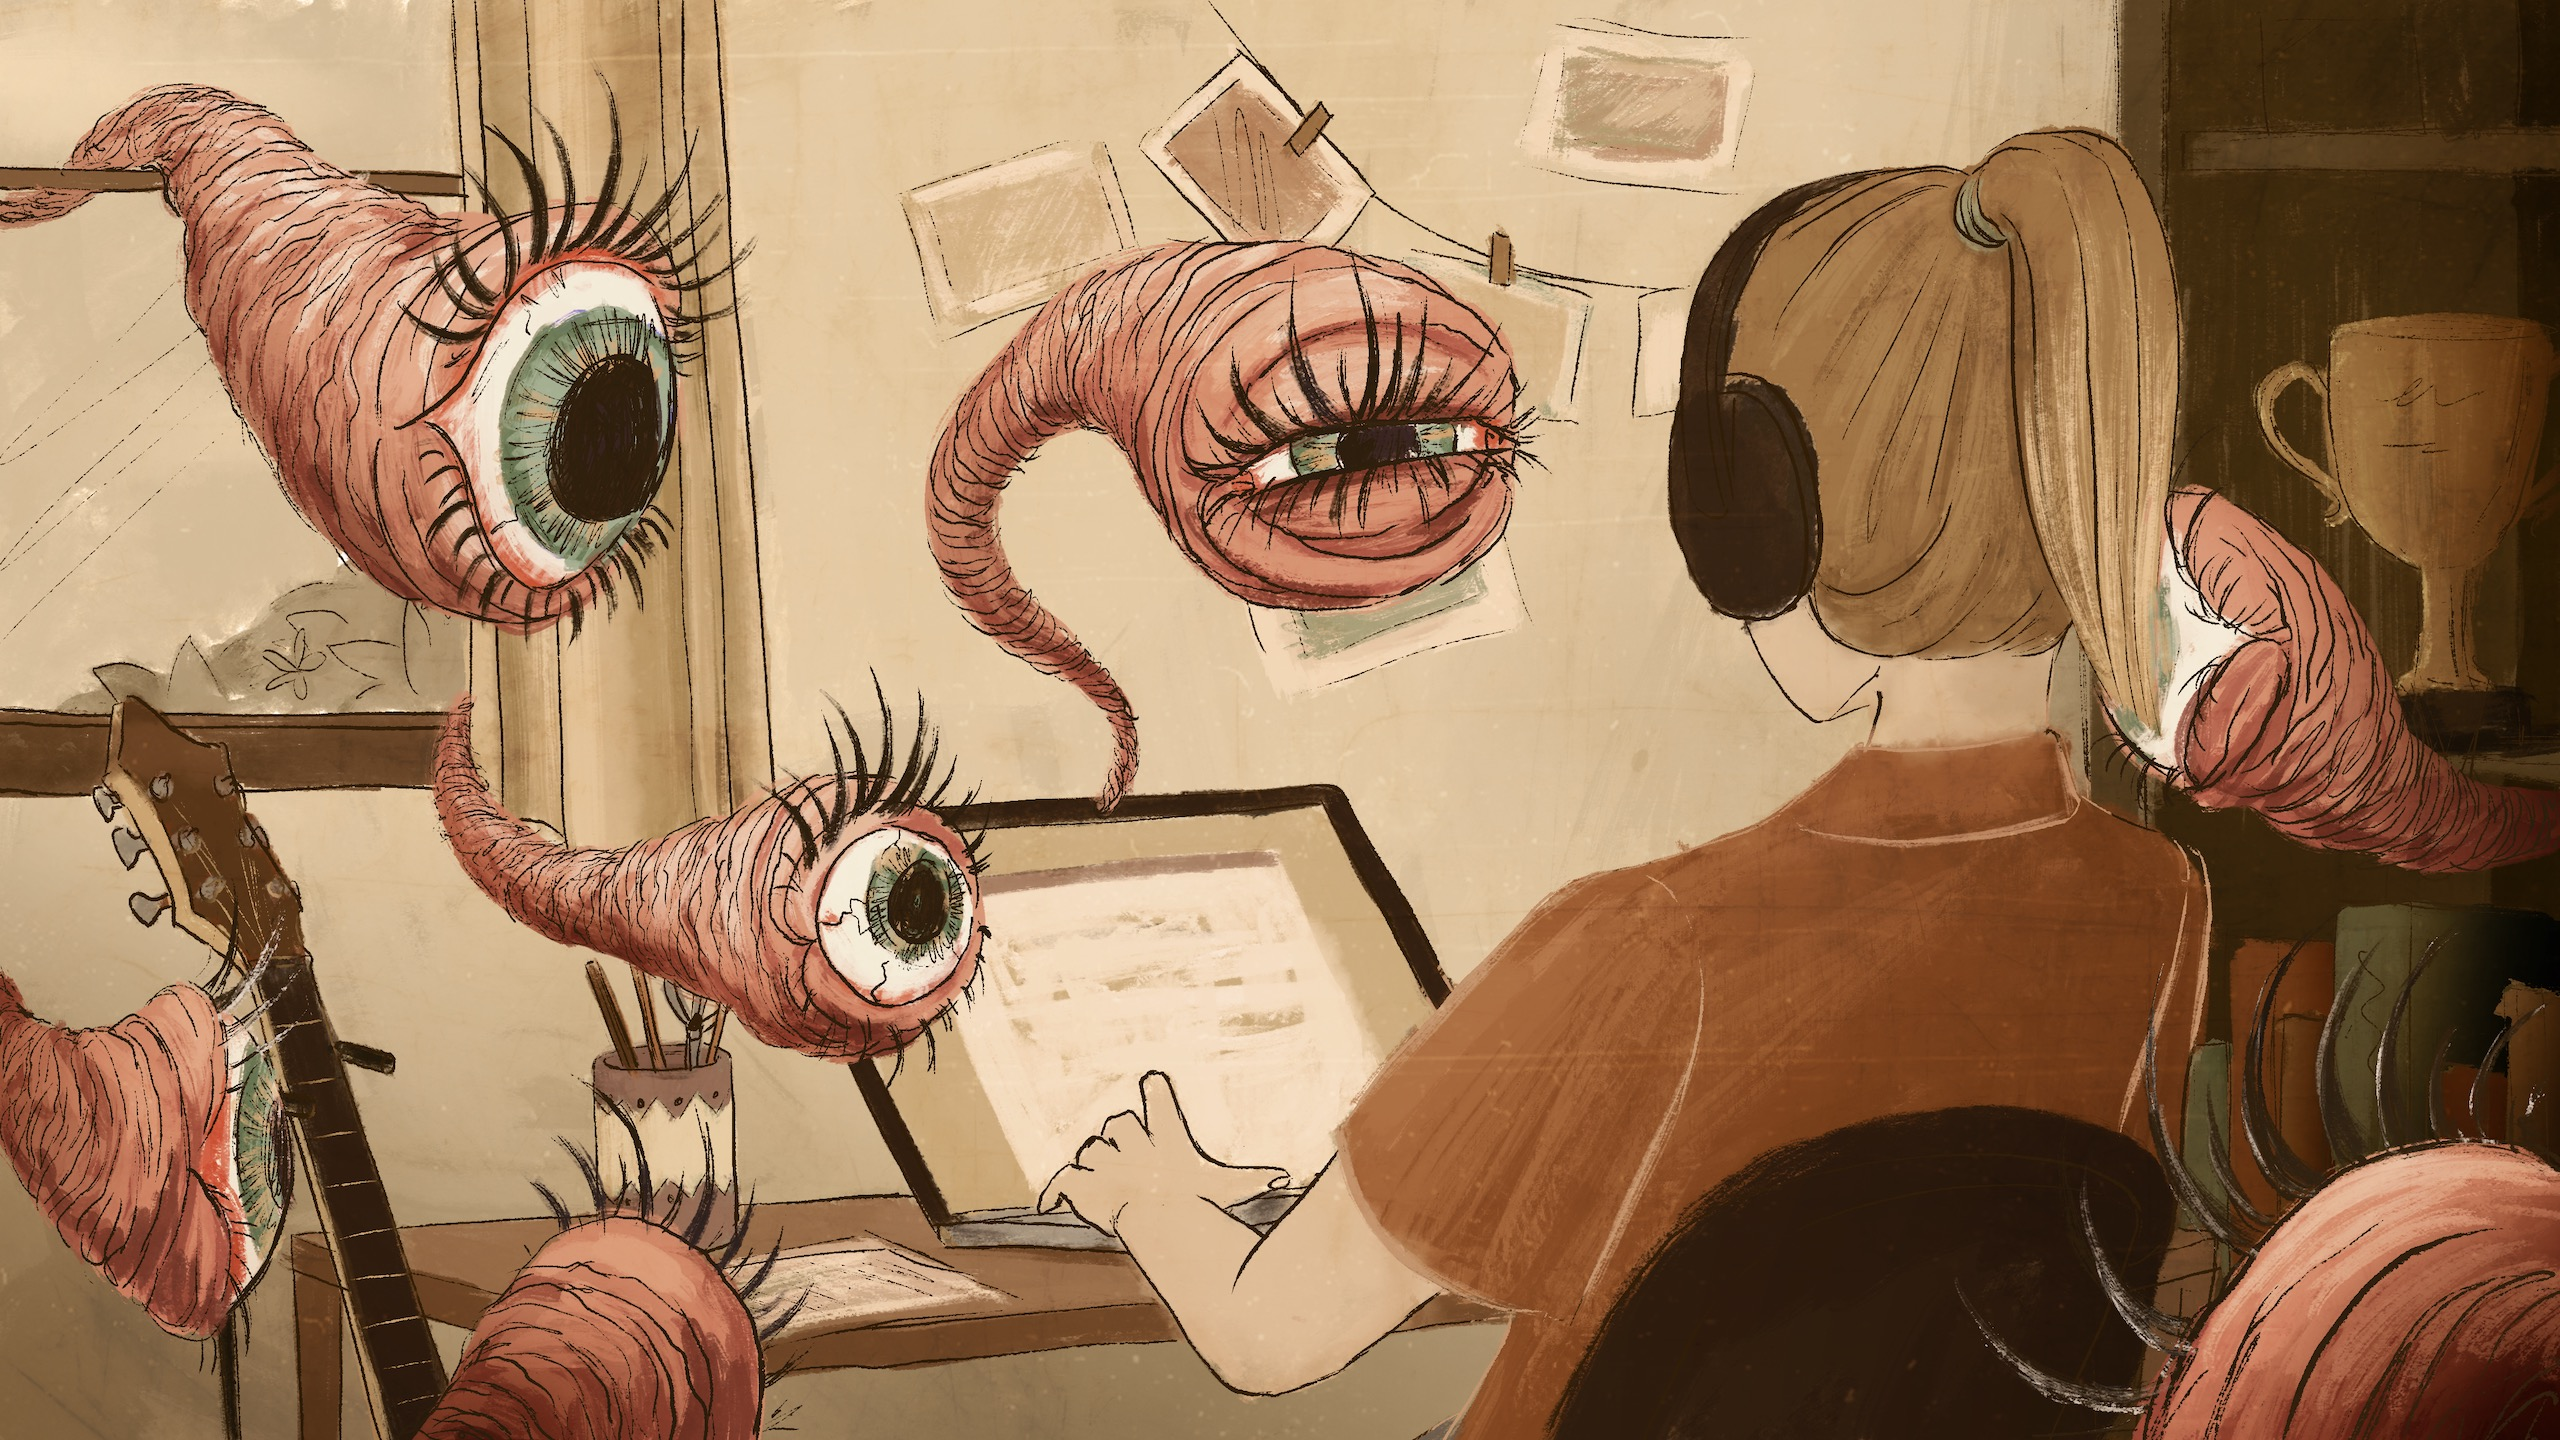 Person sitting at desk working on a laptop. Disembodied eyes are looking at them.